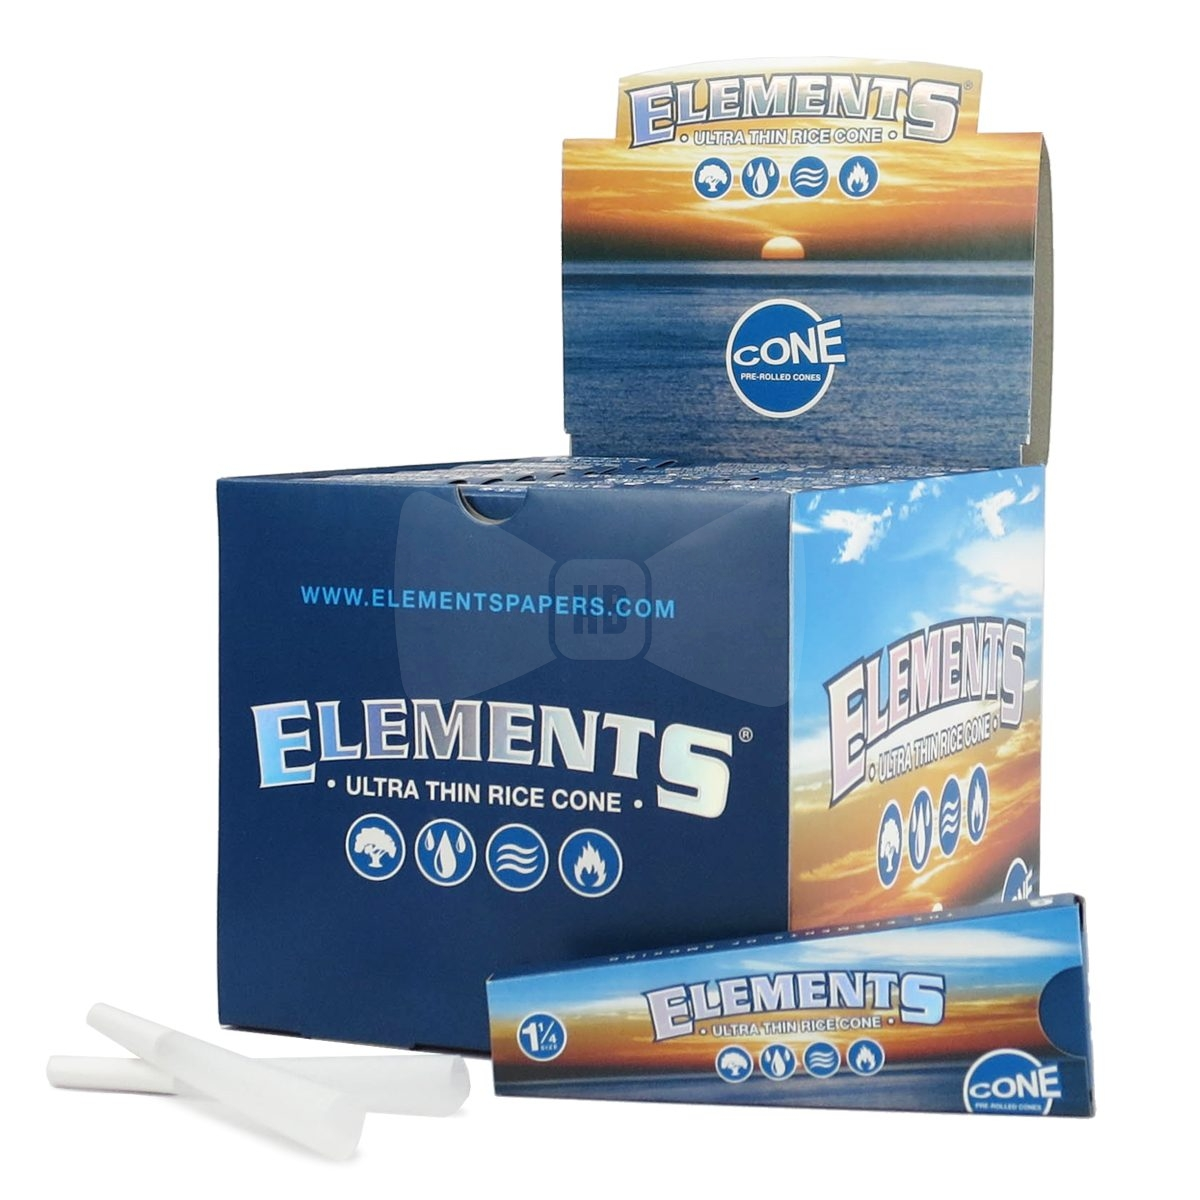 *Elements Pre Roll Cones 30Pack- 1 1/4 size-6 ps.in each #ELC